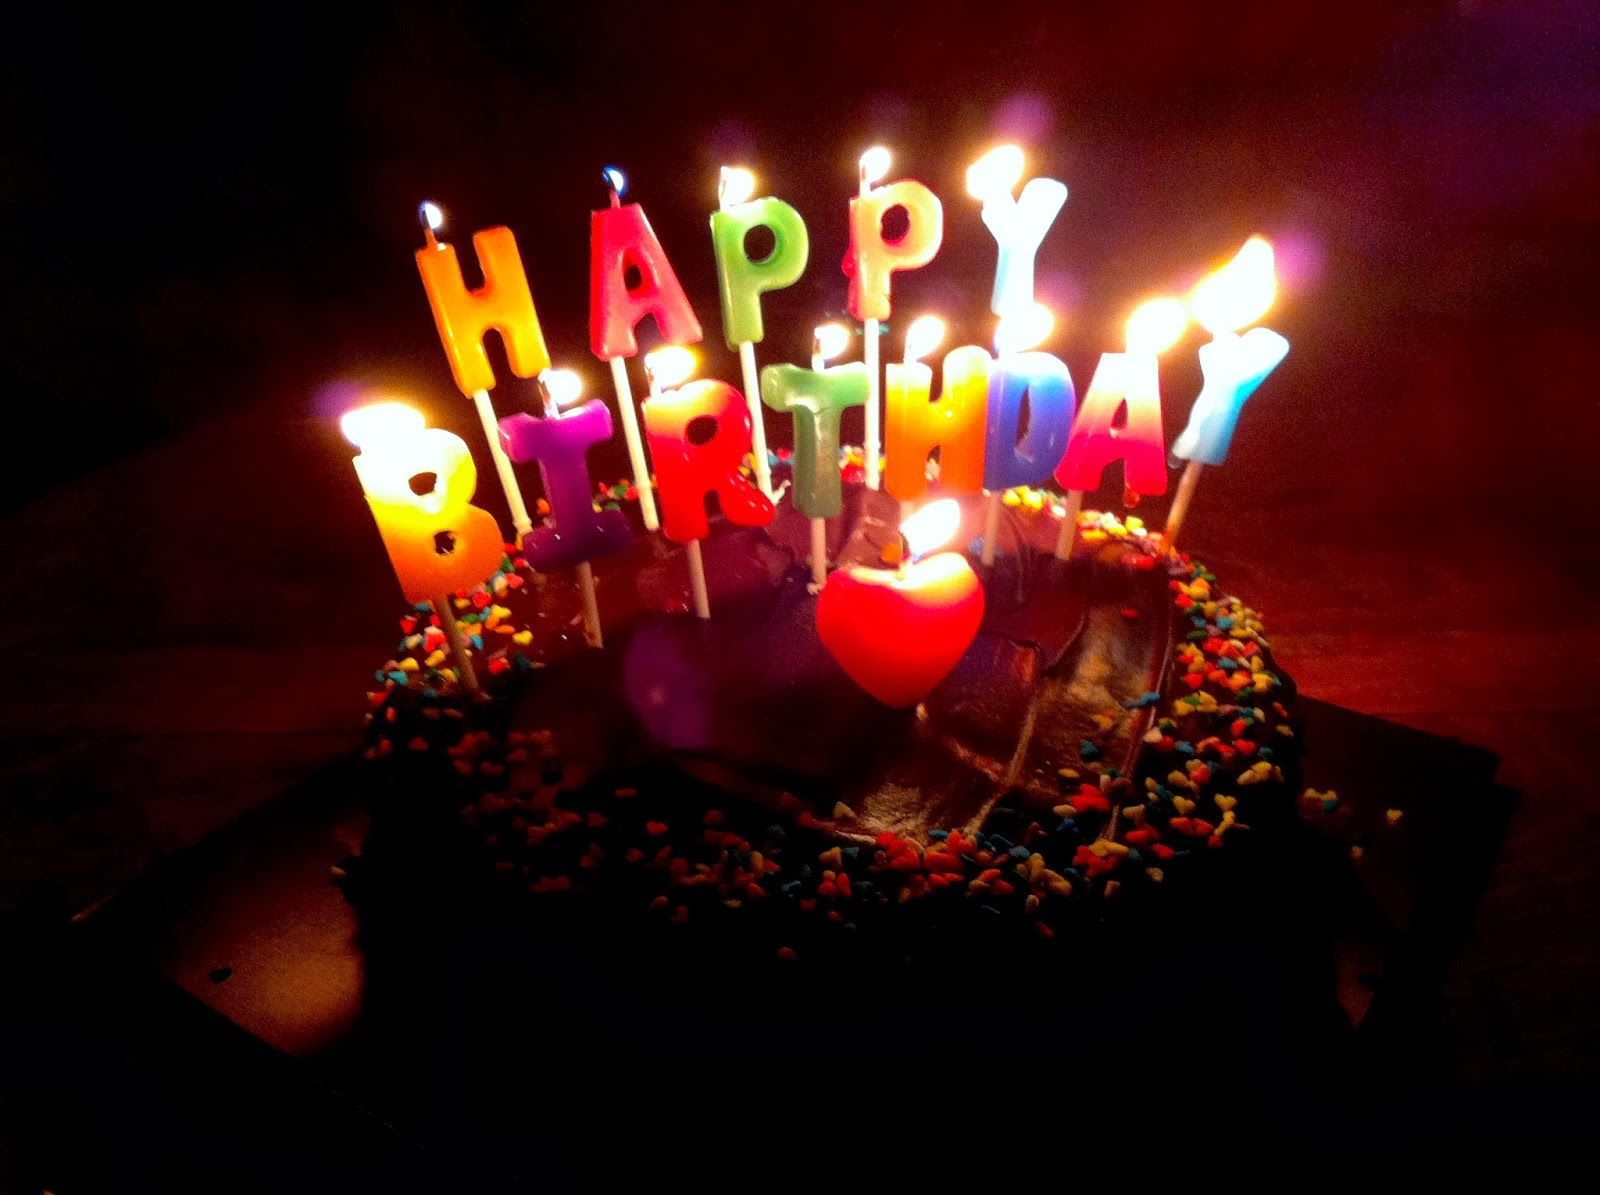 Happy Birthday Cake With Candles Birthday Cake Candle Ideas For Birthdays Pinterest Happy